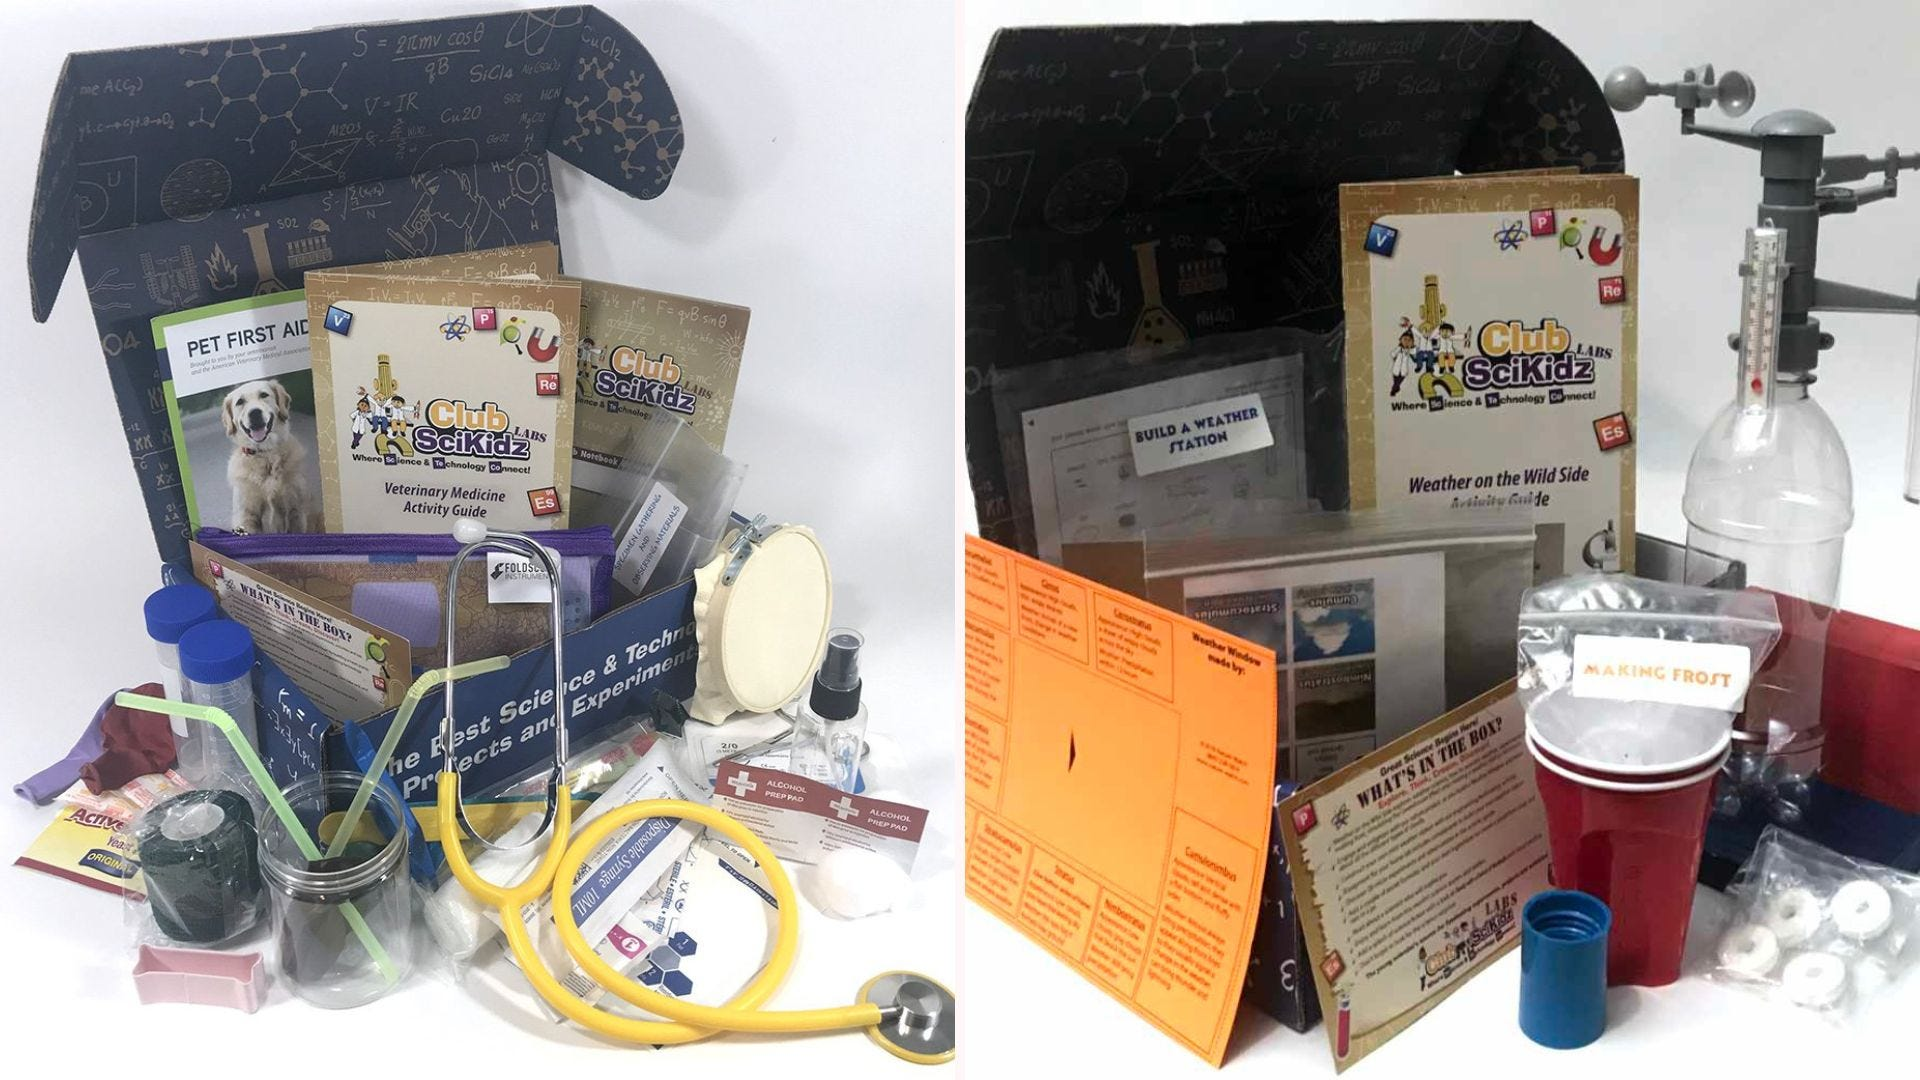 Science subscription boxes, themed around veterinary science and weather